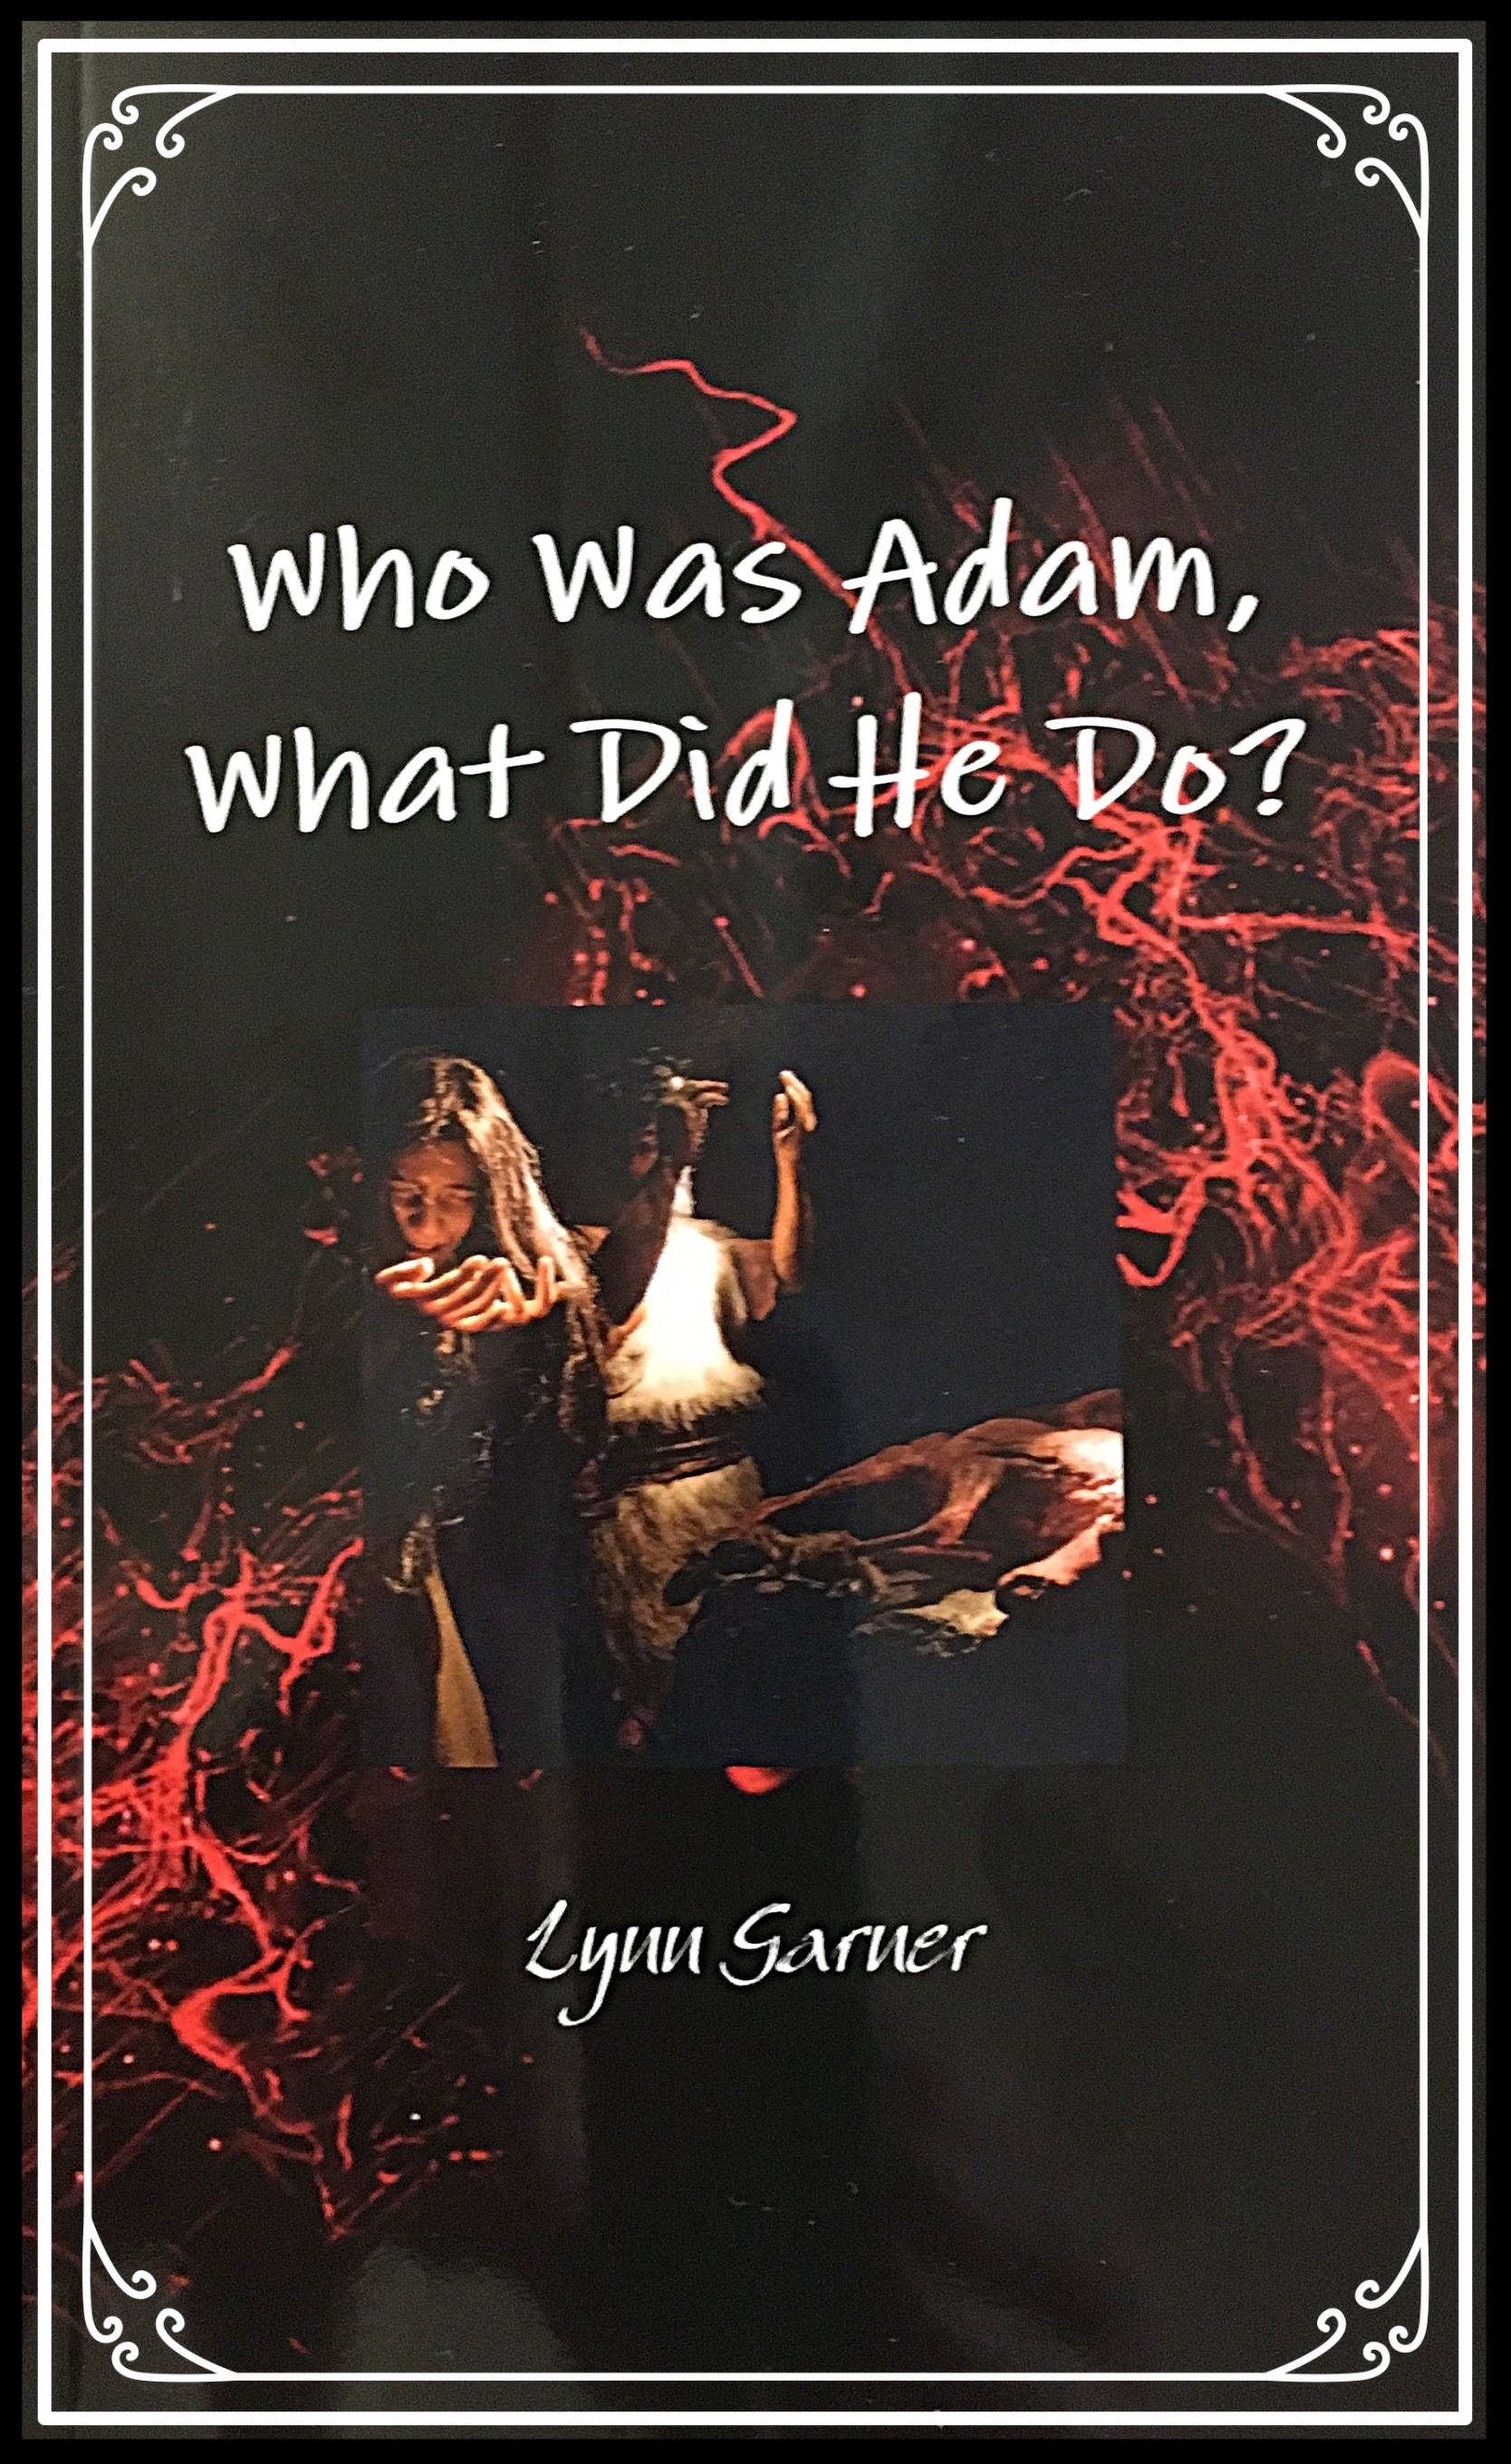 was adam really the first human god ever created? - This book will challenge your thinking, it will show you just exactly where the first Adam came from and what he believed that caused the transgression.